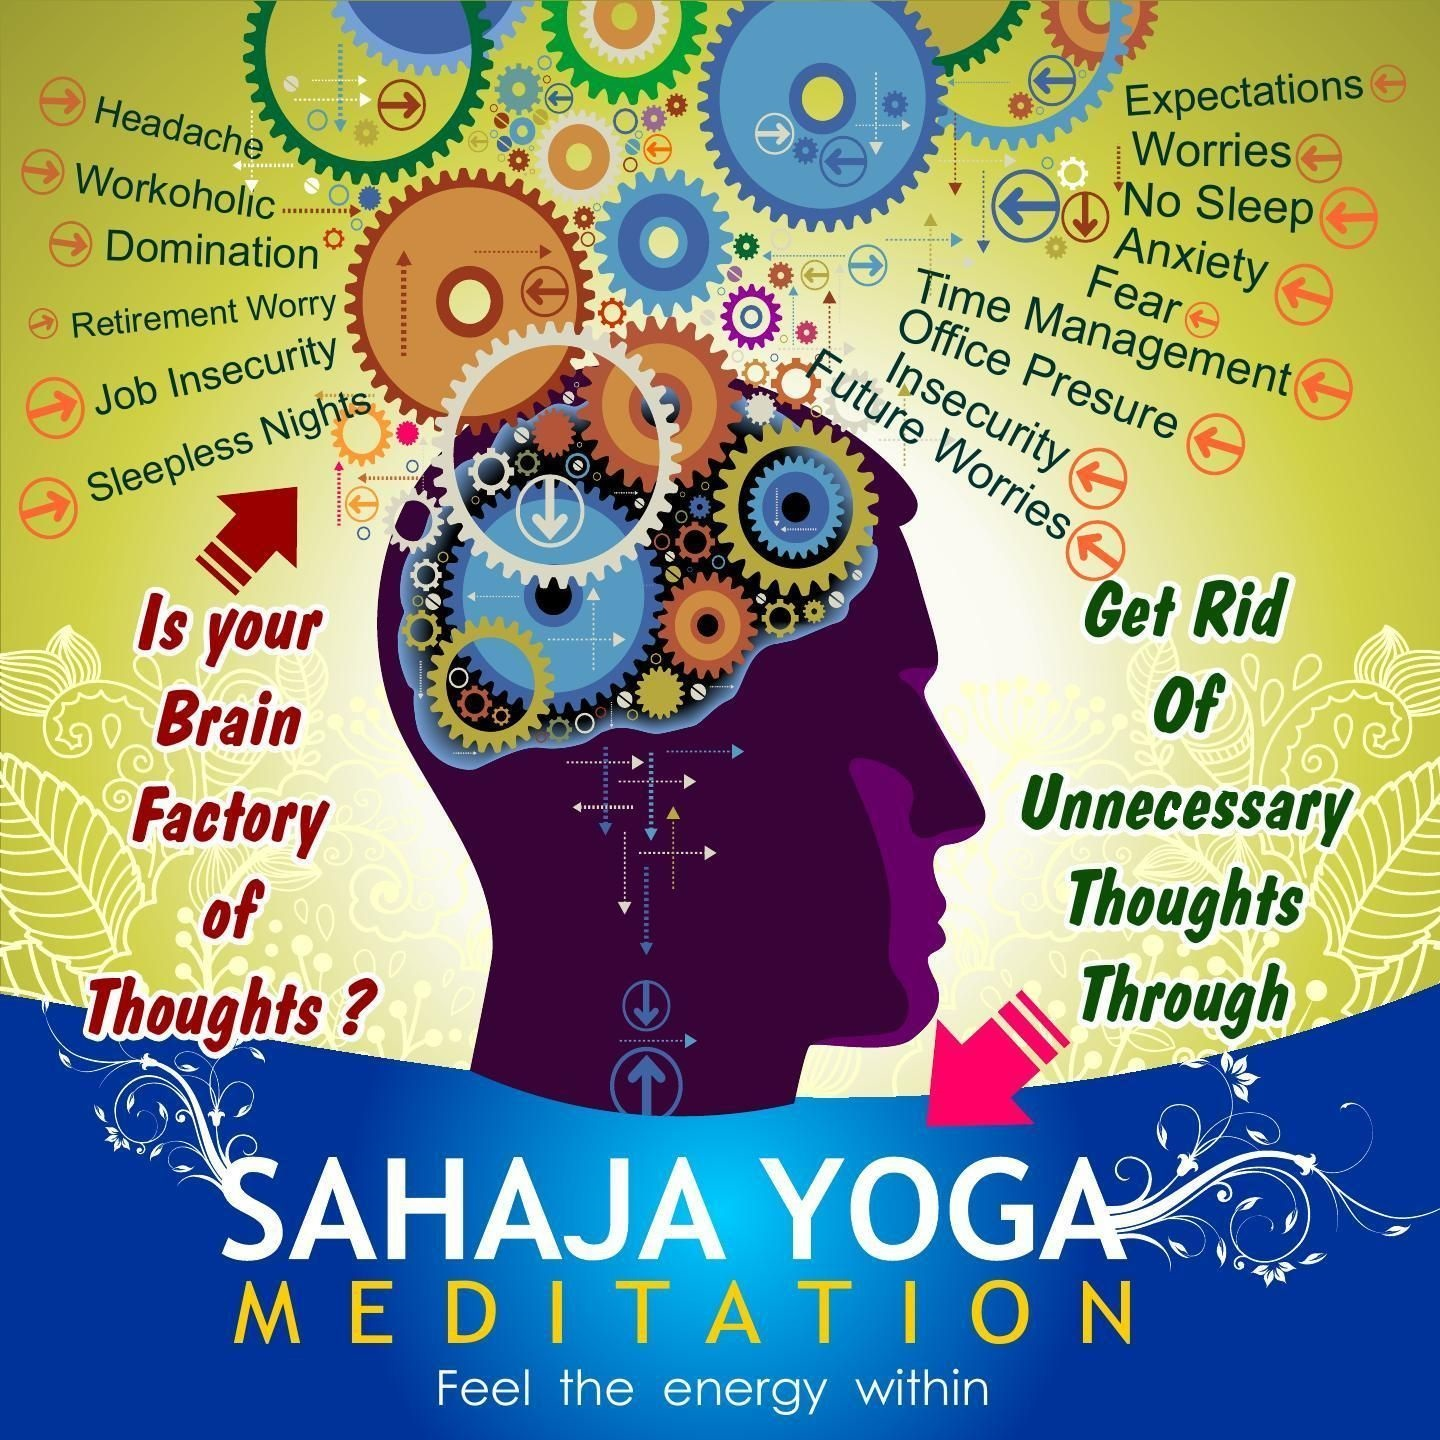 Benefits of Sahaja Yoga Meditation